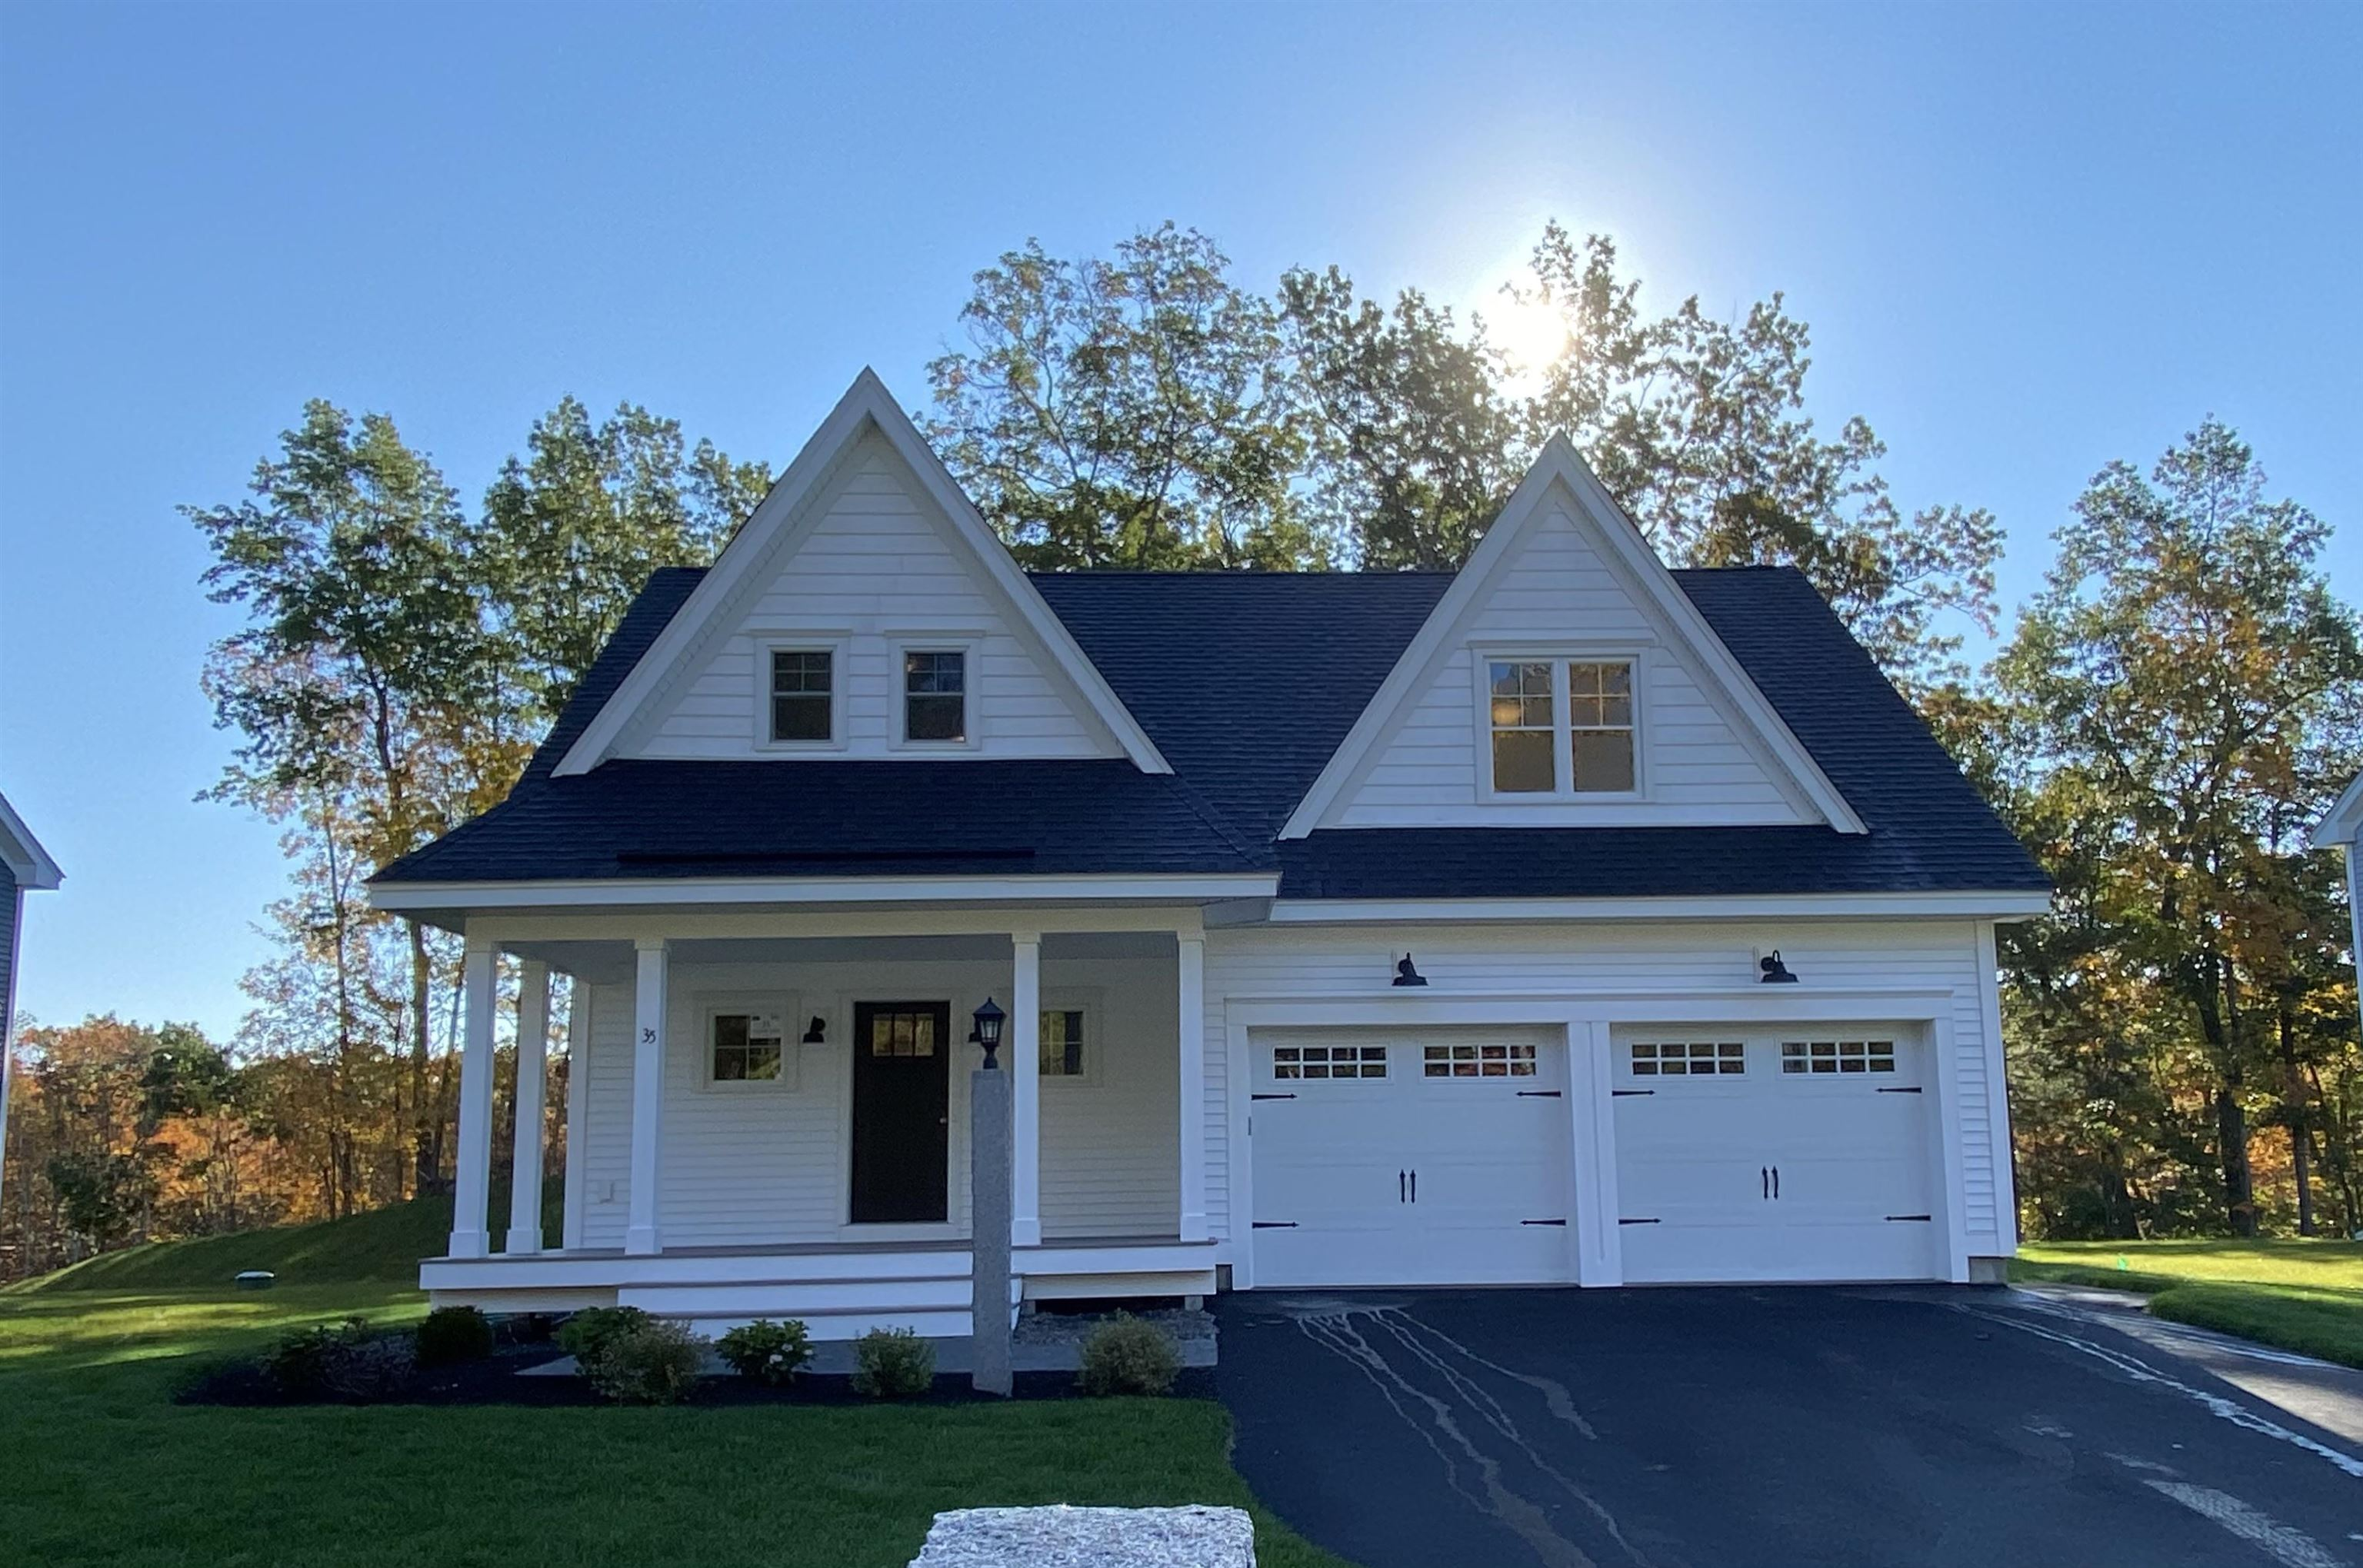 Photo of Lot 96 Lorden Commons Londonderry NH 03053